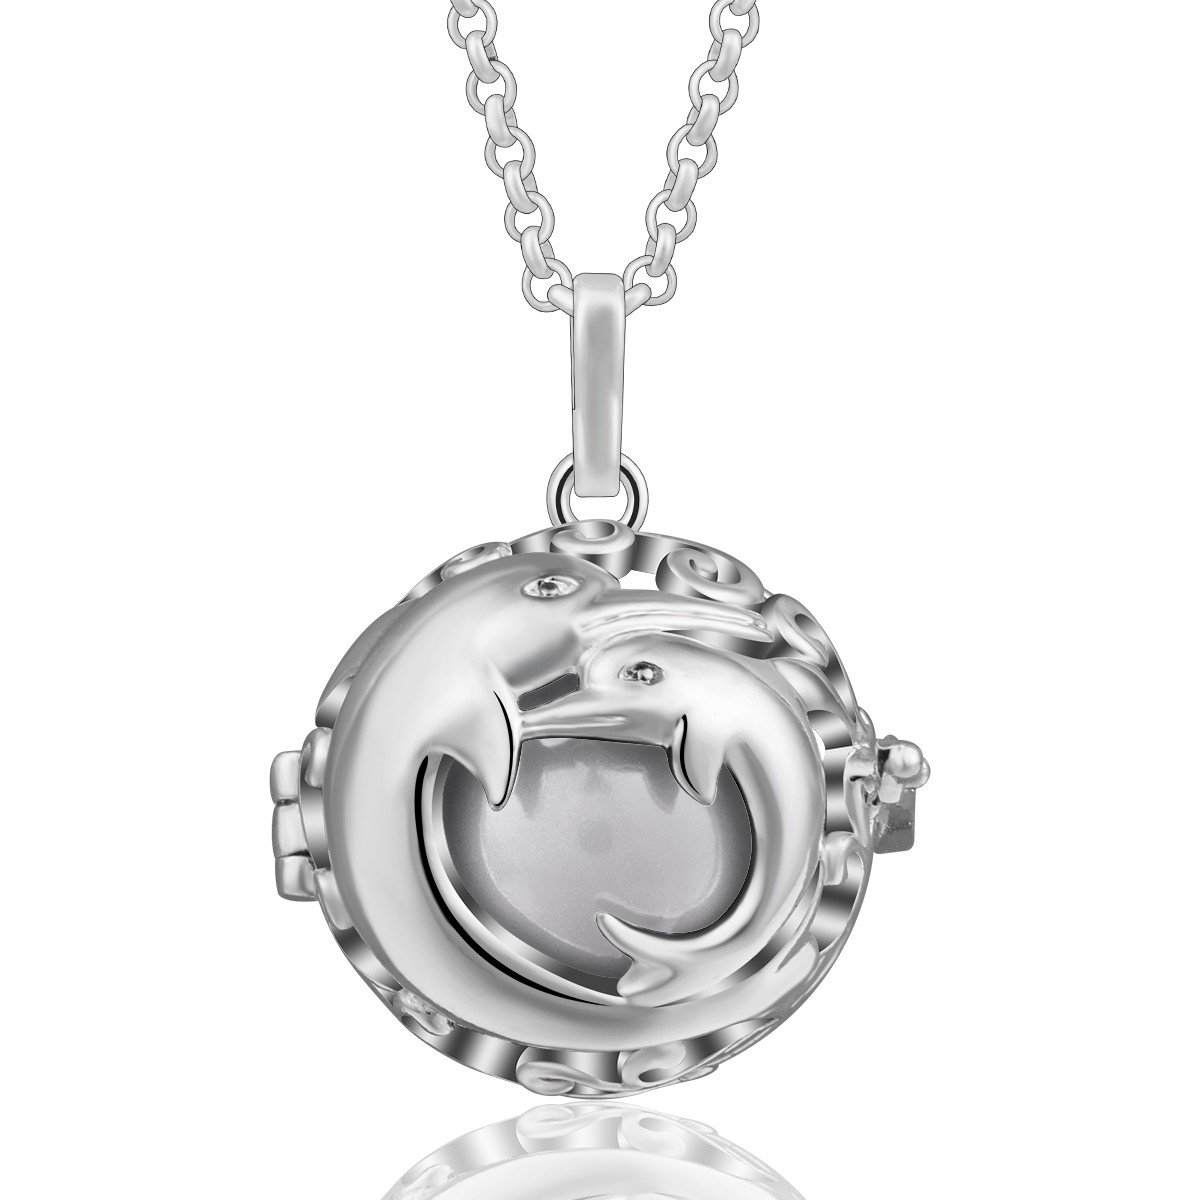 EUDORA Harmony Bola Necklace Cute Dolphins Music Chime Pendant Pregnancy Wishing Ball, 30'' Chain White